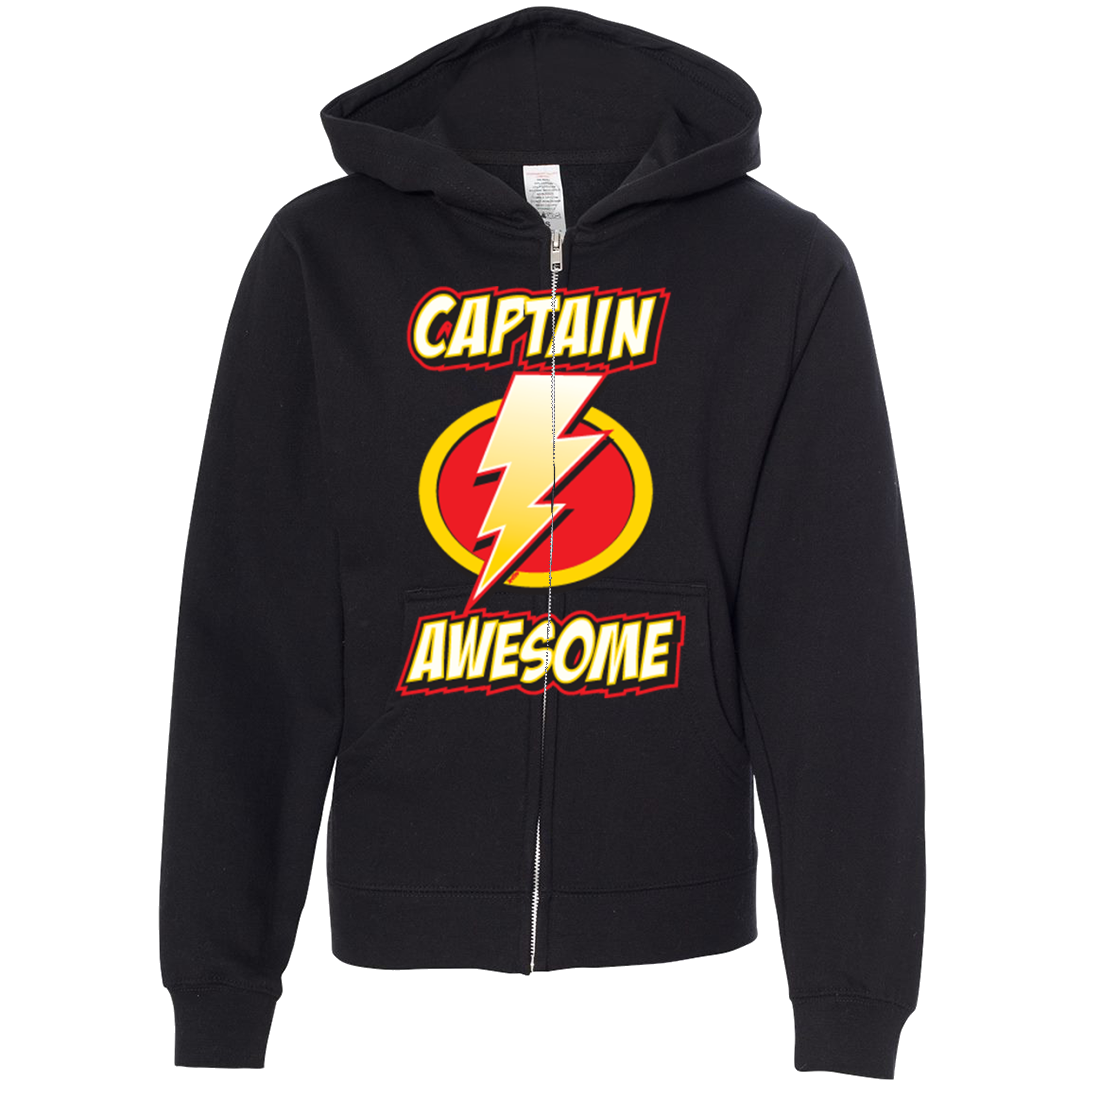 Captain Awesome Premium Youth Zip-Up Hoodie